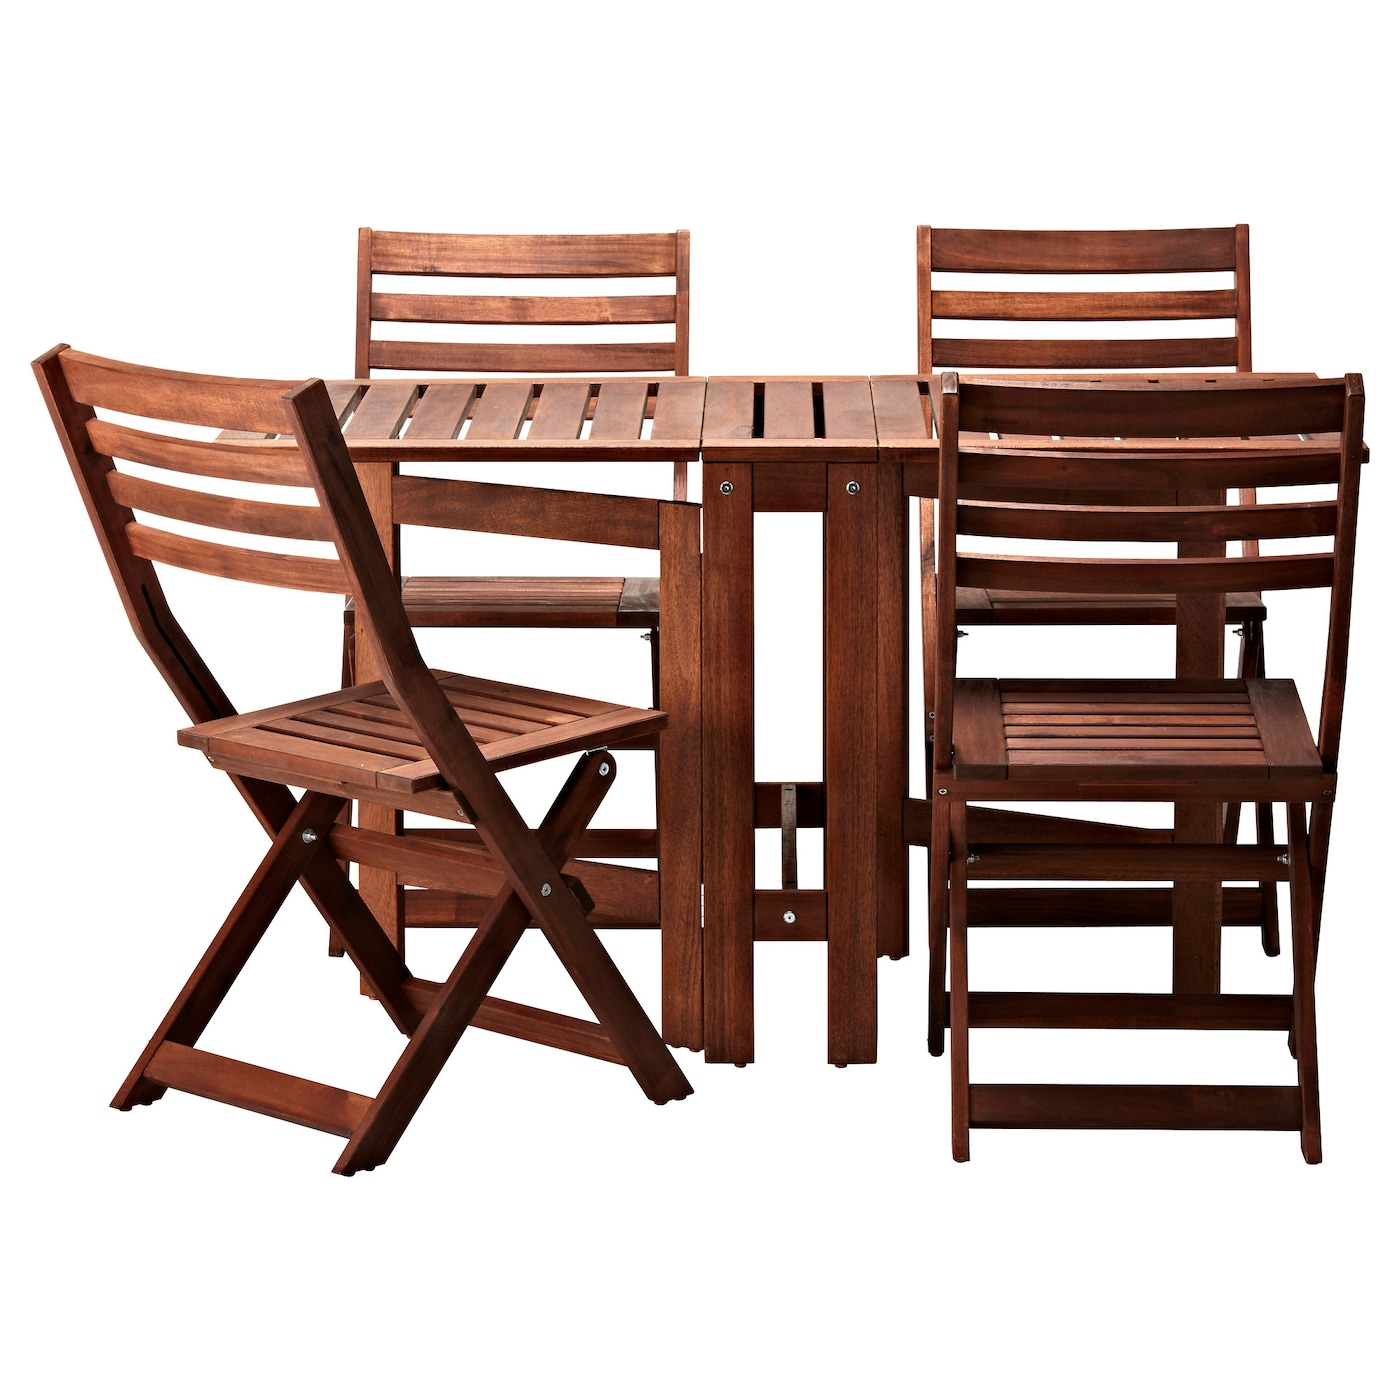 Pplar table 4 folding chairs outdoor brown stained ikea for Table 4 personnes ikea